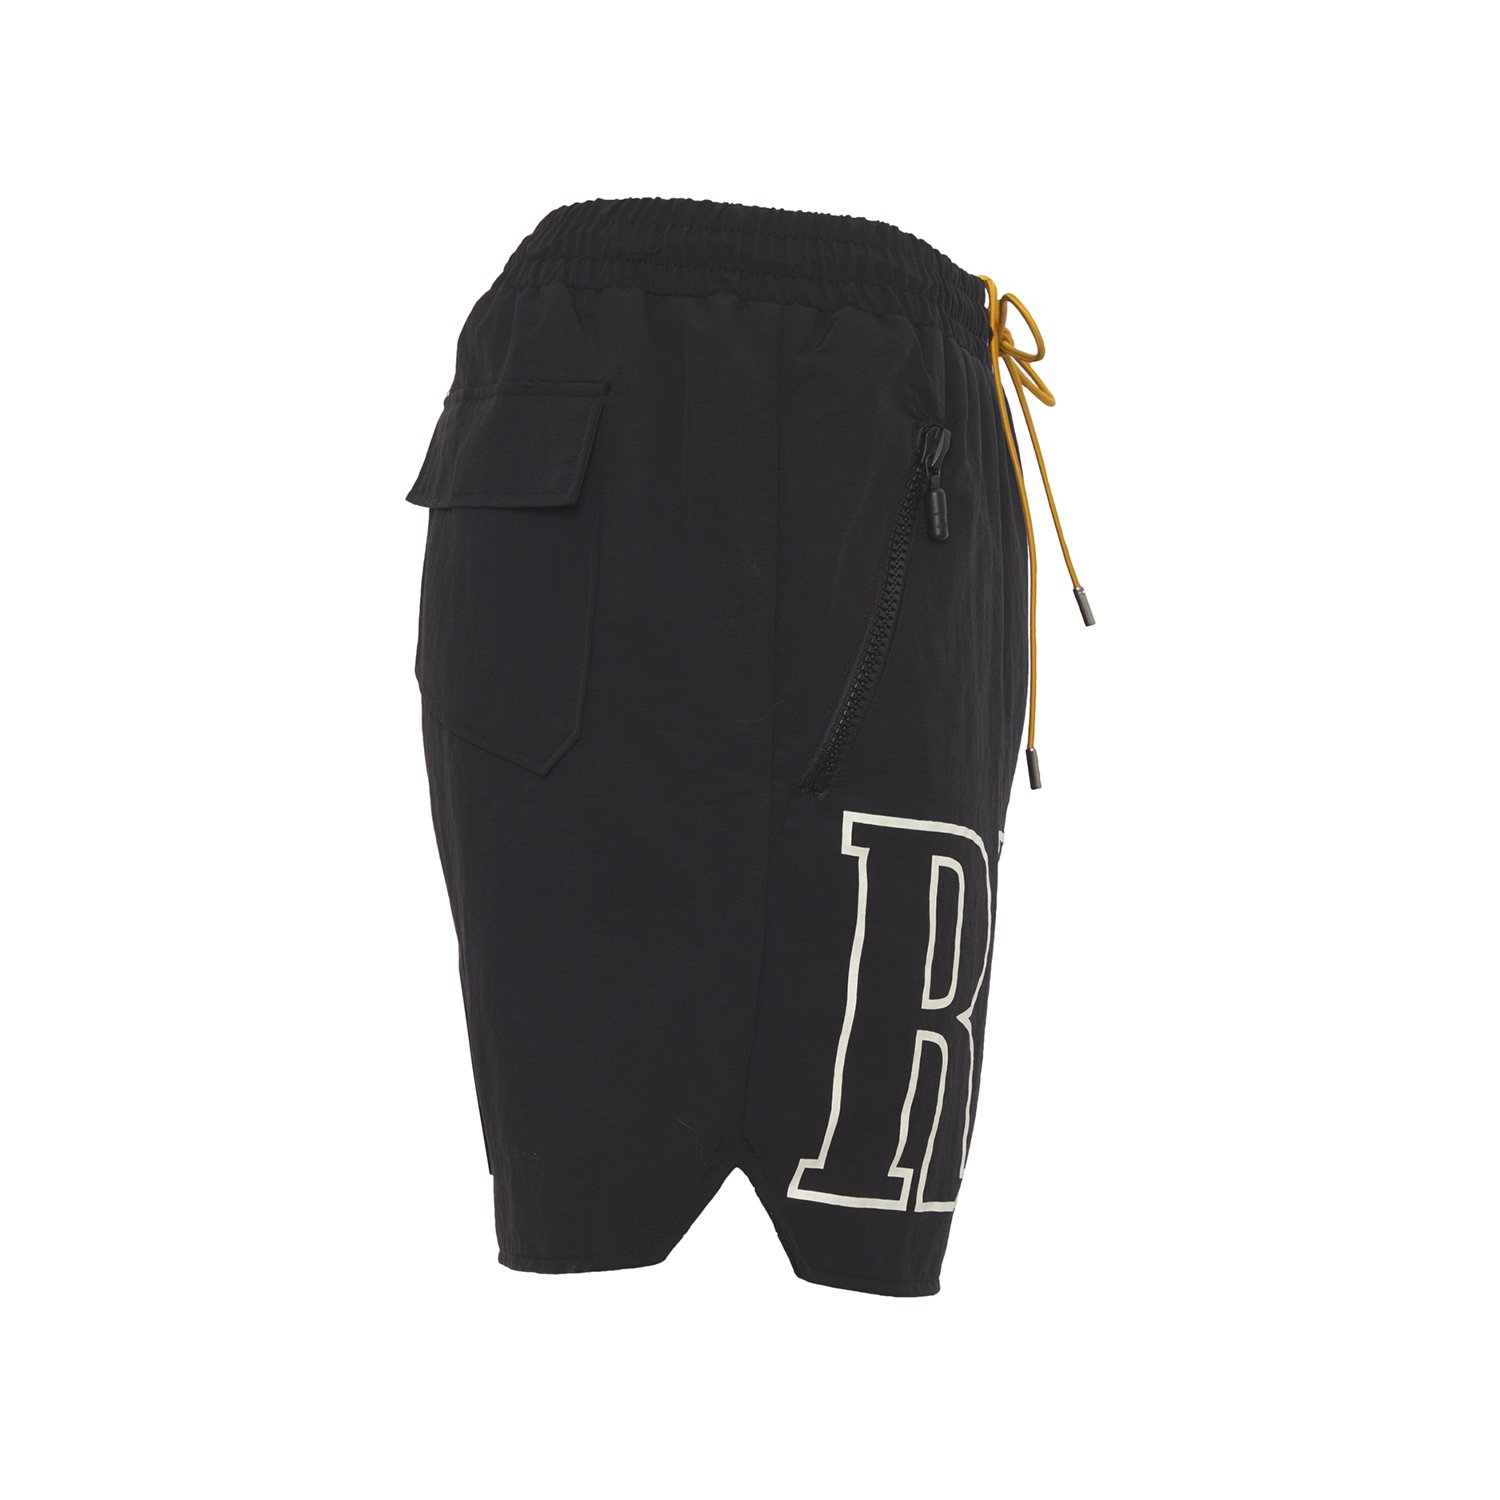 Rh Logo Swim Trunk